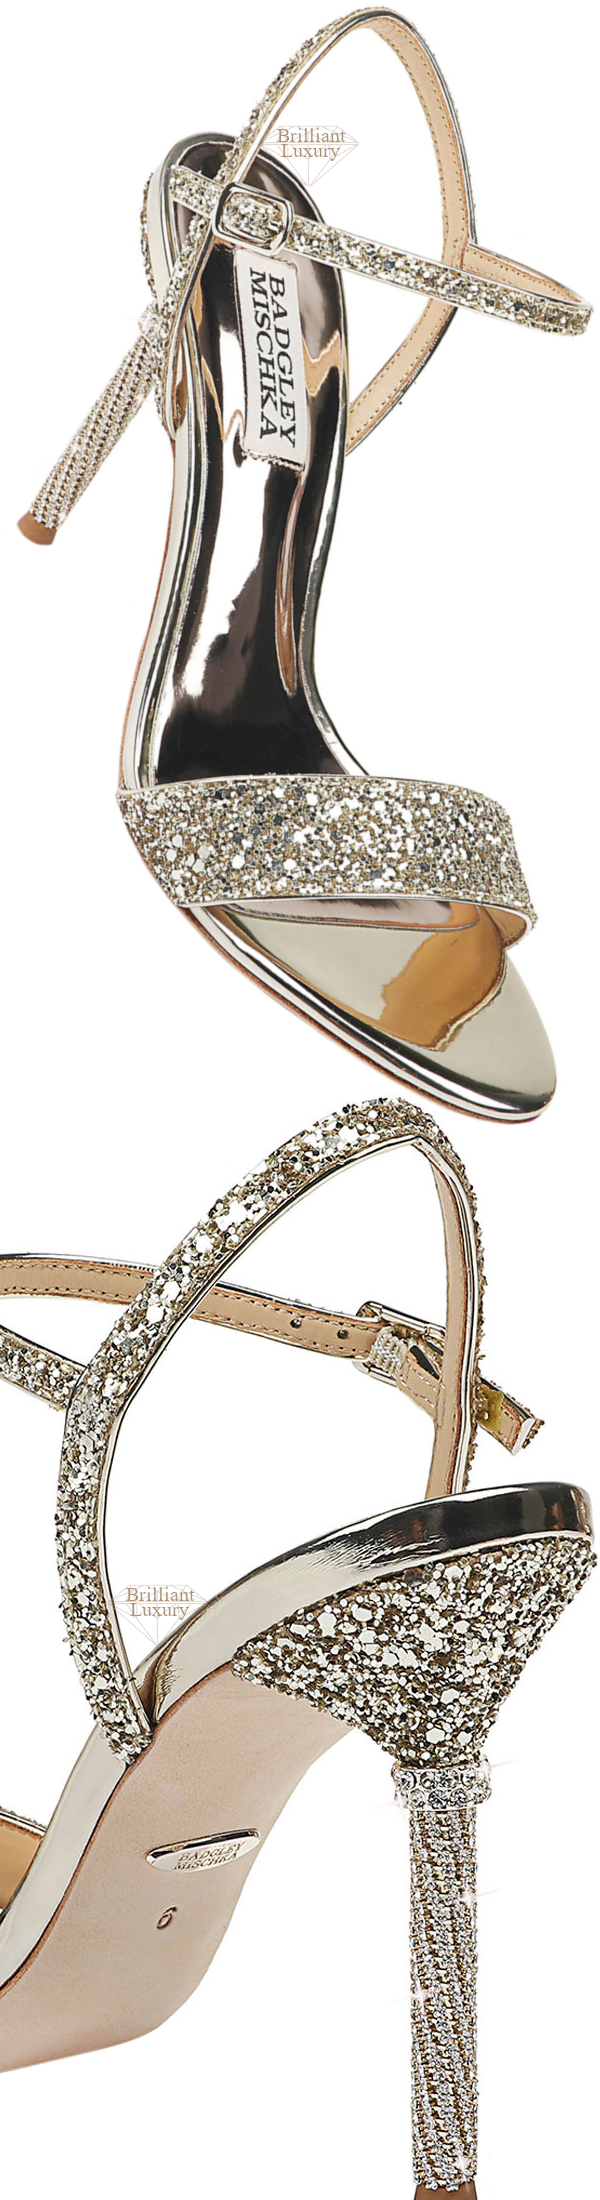 Shoe Collection Spring 2020 Badgley Mischka Olympia High-Heel Glitter Sandals